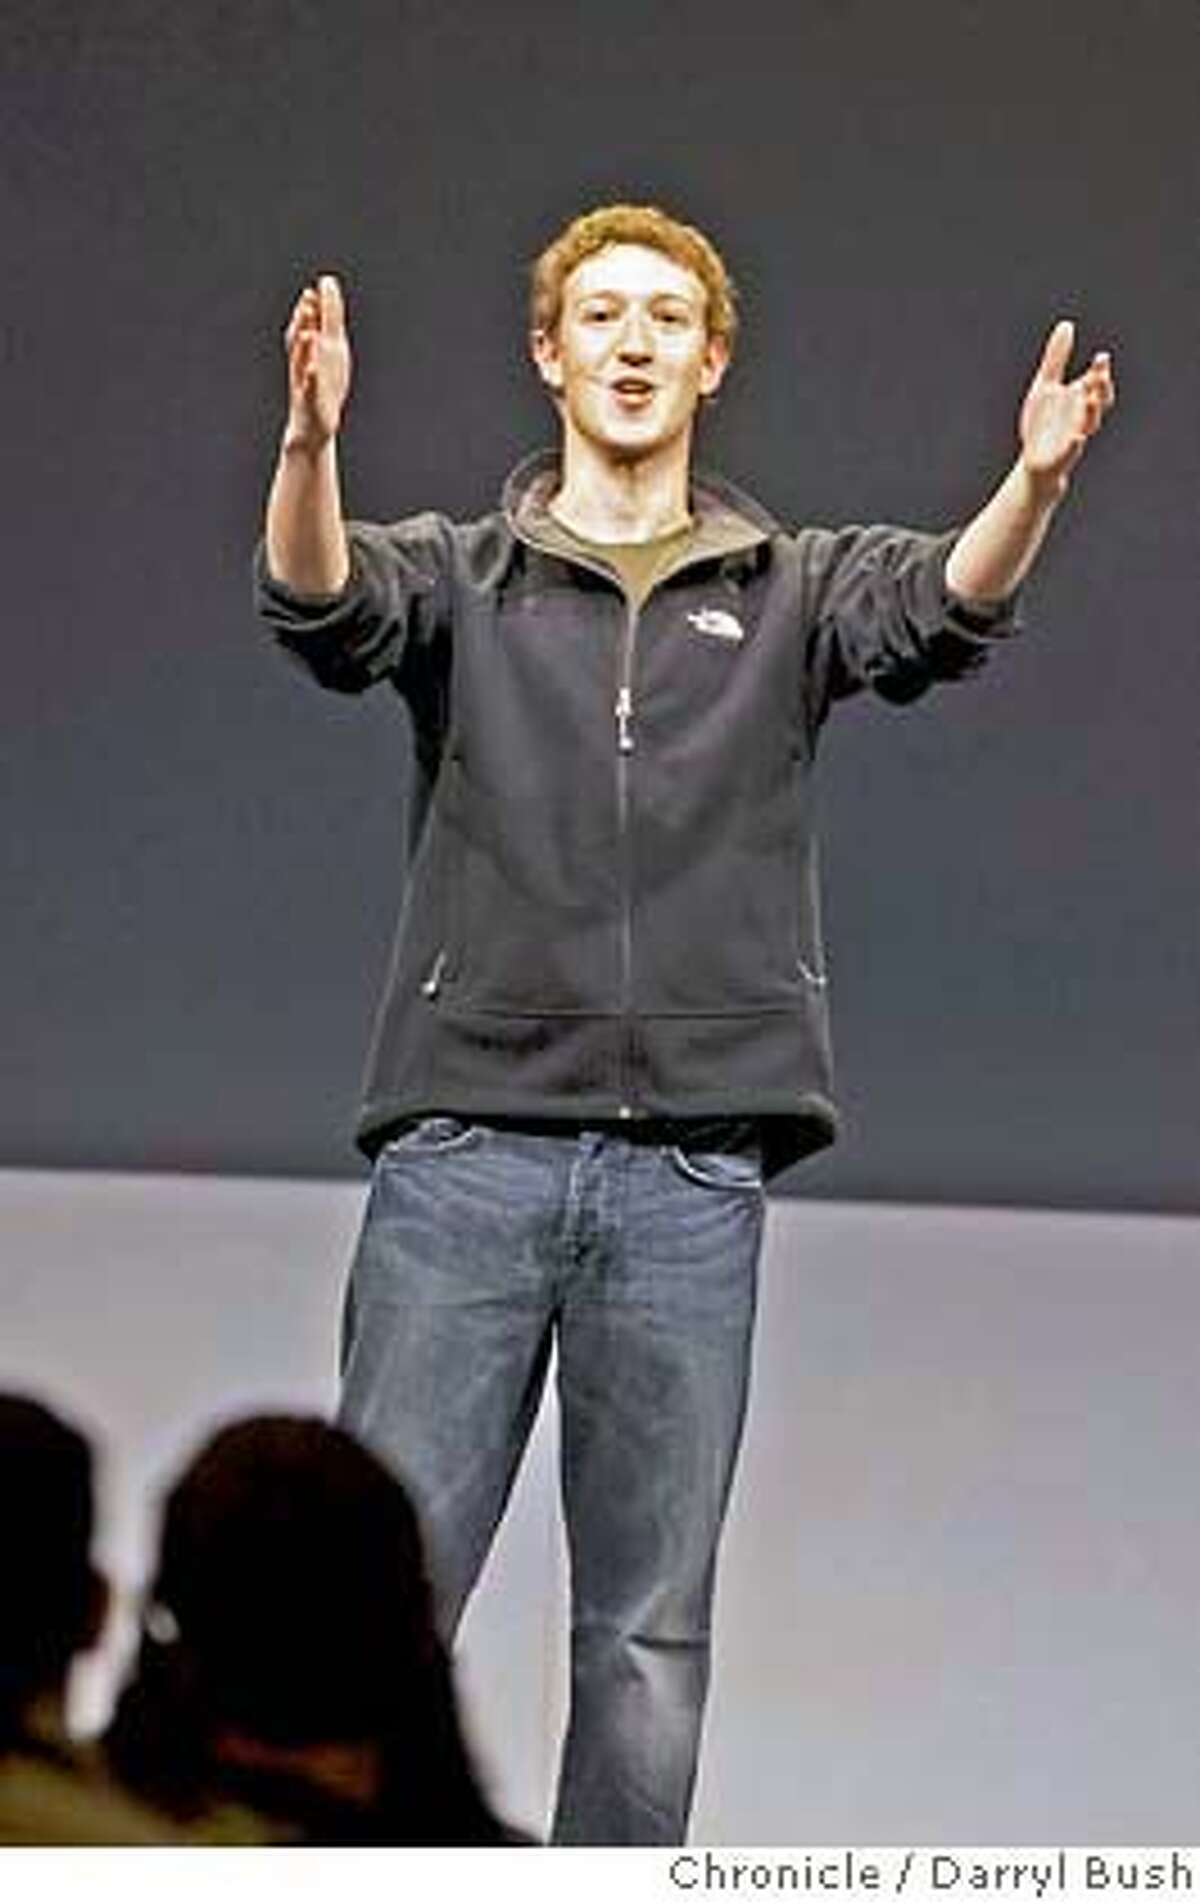 facebook25_0007_db.JPG Facebook CEO, Mark Zuckerberg, gives his keynote address to a large audience attending Facebook Platform Launch 2007 at The Concourse at the San Francisco Design Center in San Francisco, CA, on Thursday, May, 24, 2007. photo taken: 5/24/07 Darryl Bush / The Chronicle ** (cq) MANDATORY CREDIT FOR PHOTOG AND SF CHRONICLE/NO SALES-MAGS OUT